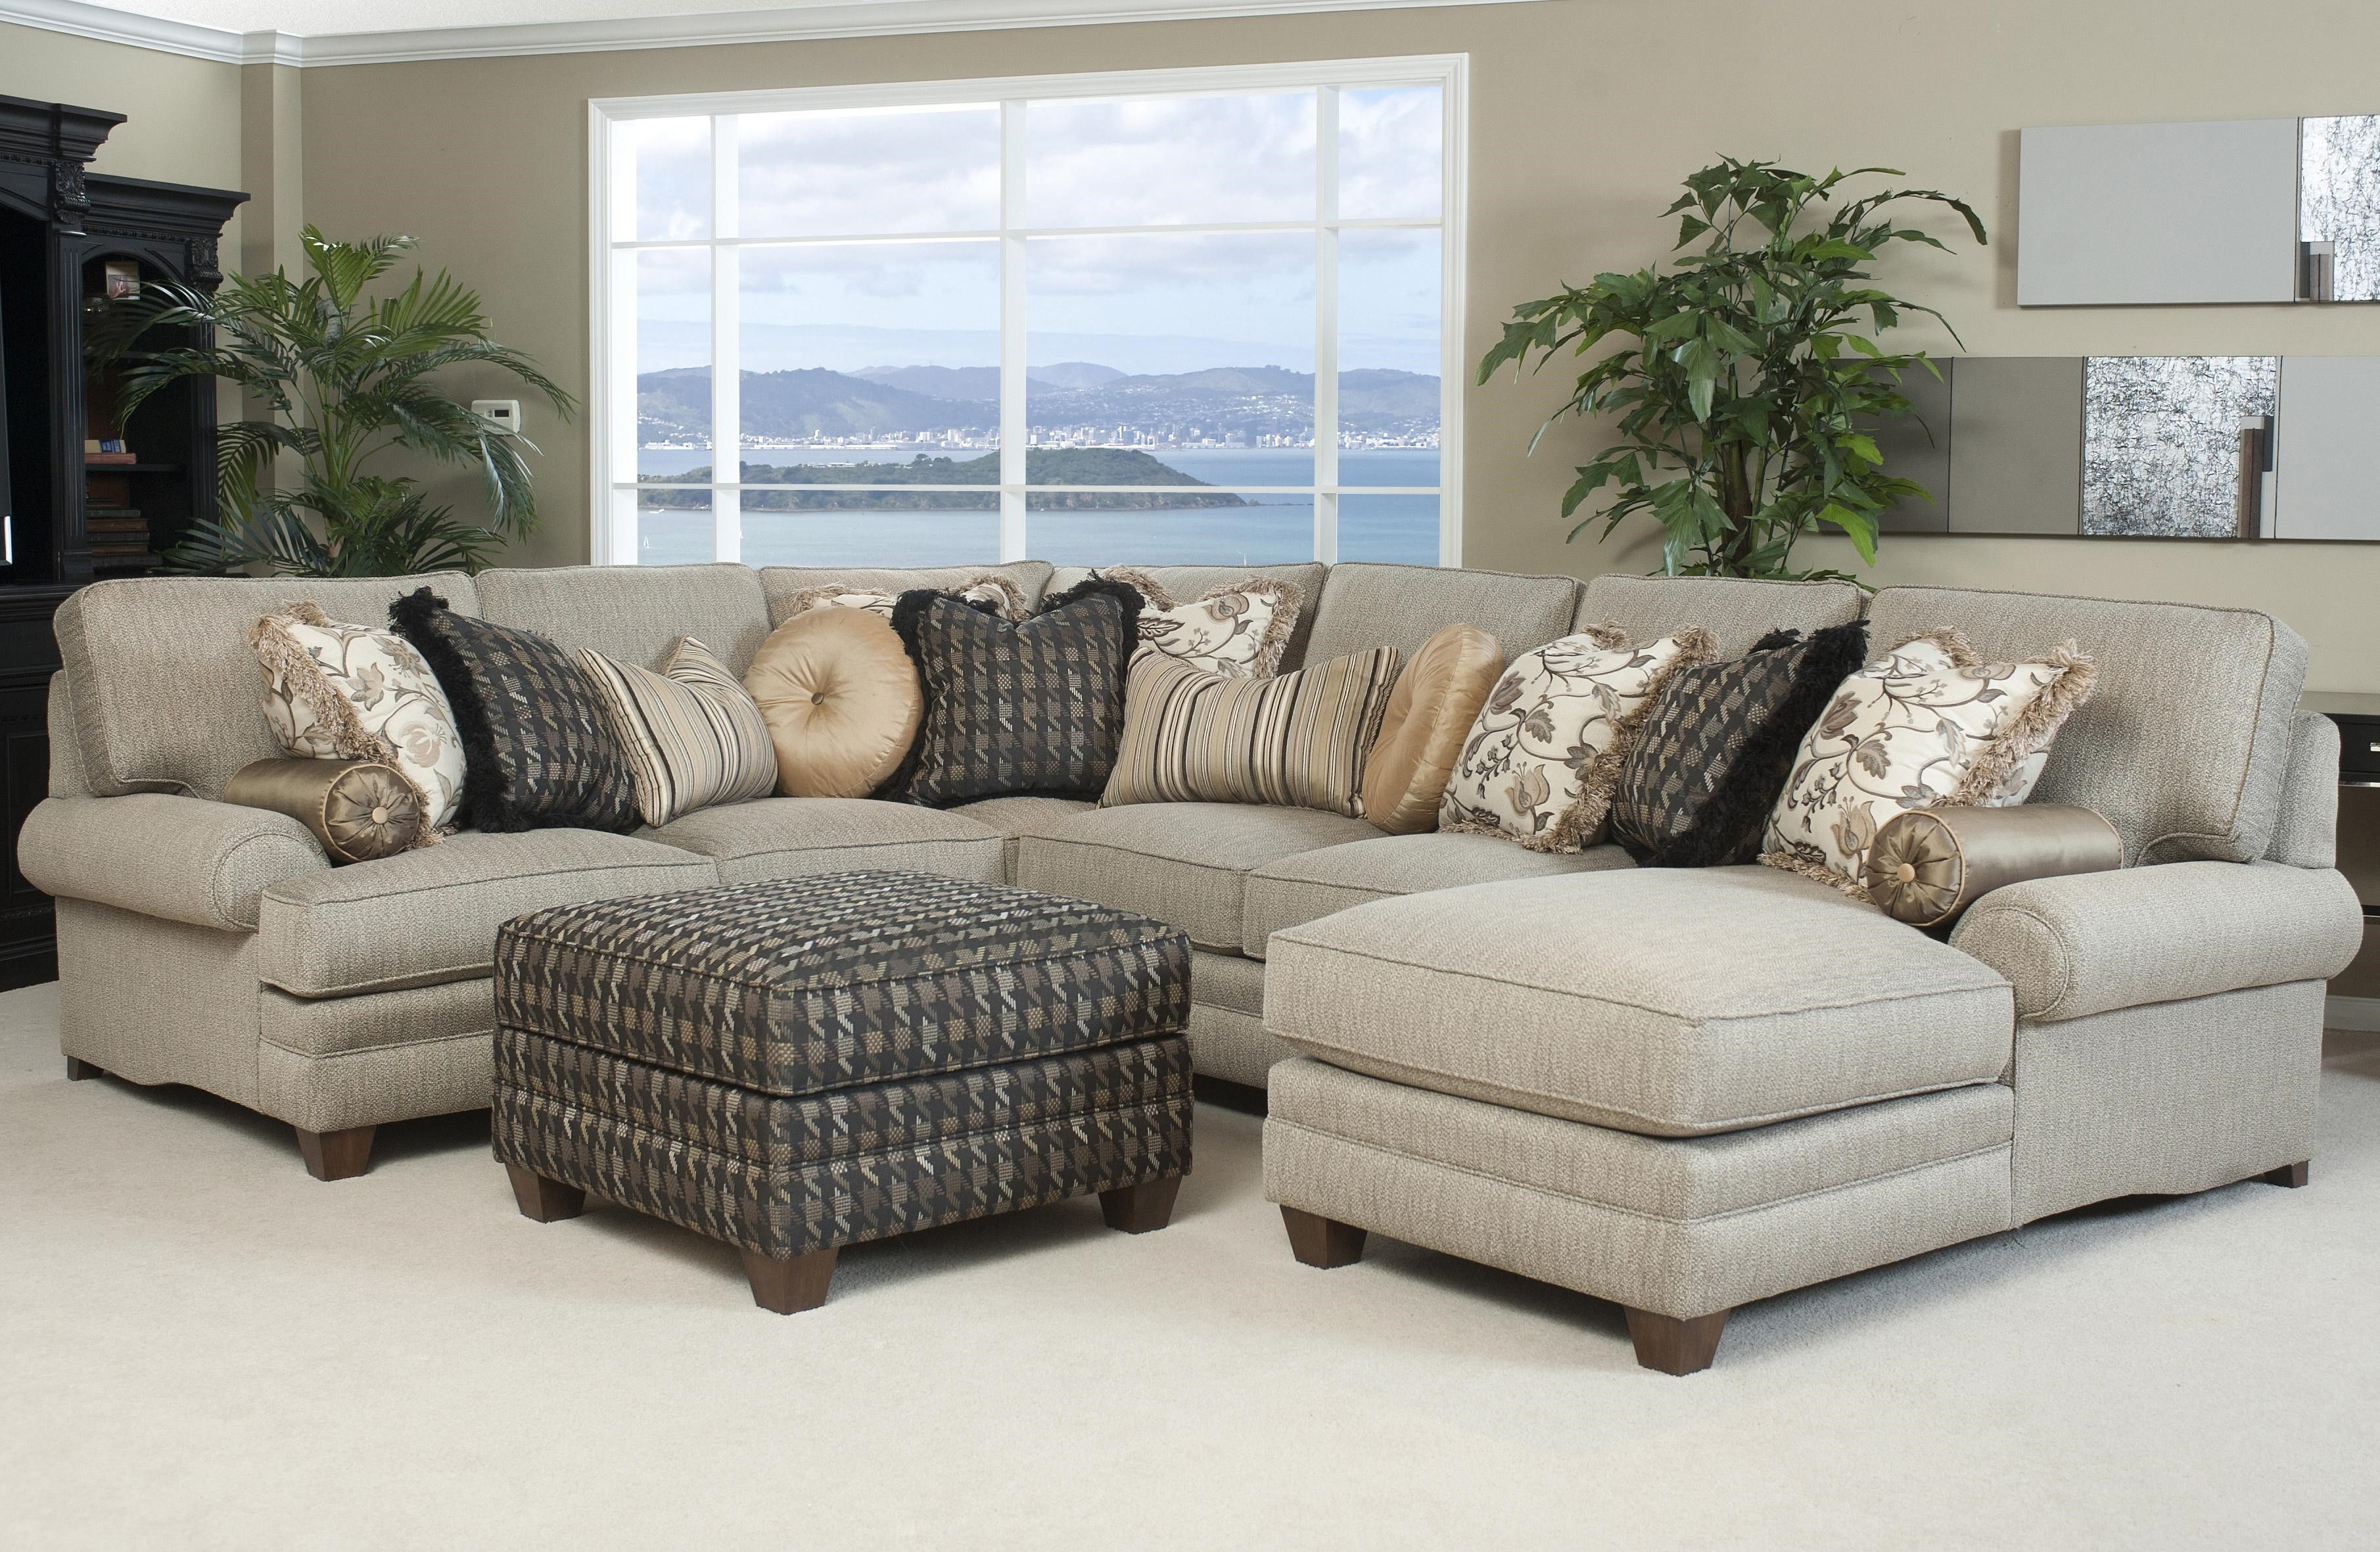 Most Comfortable Leather Sectional Sofa